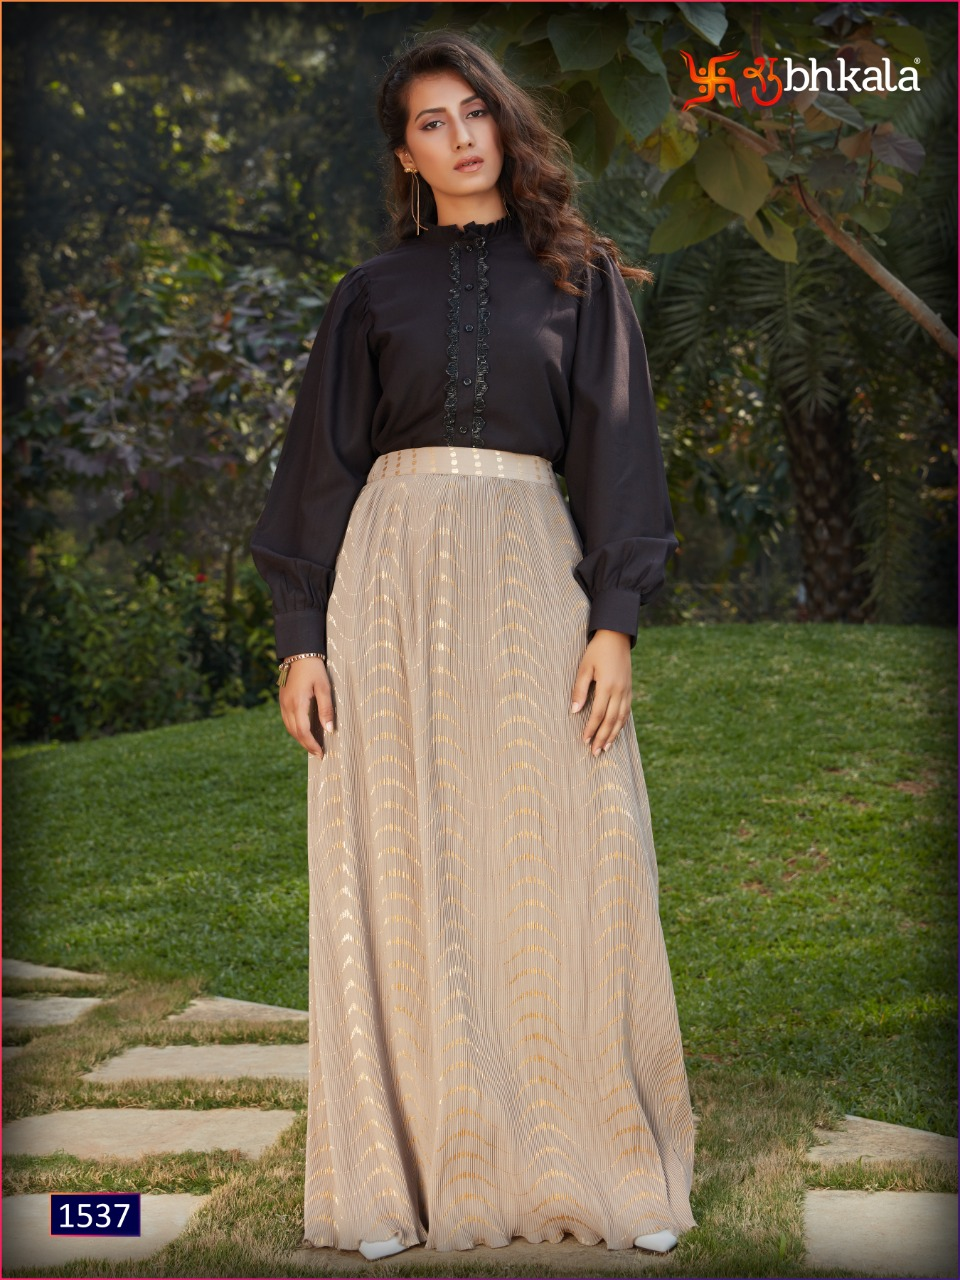 Shubhkala Frill And Flare Vol 2 Designer Imported Crop Top